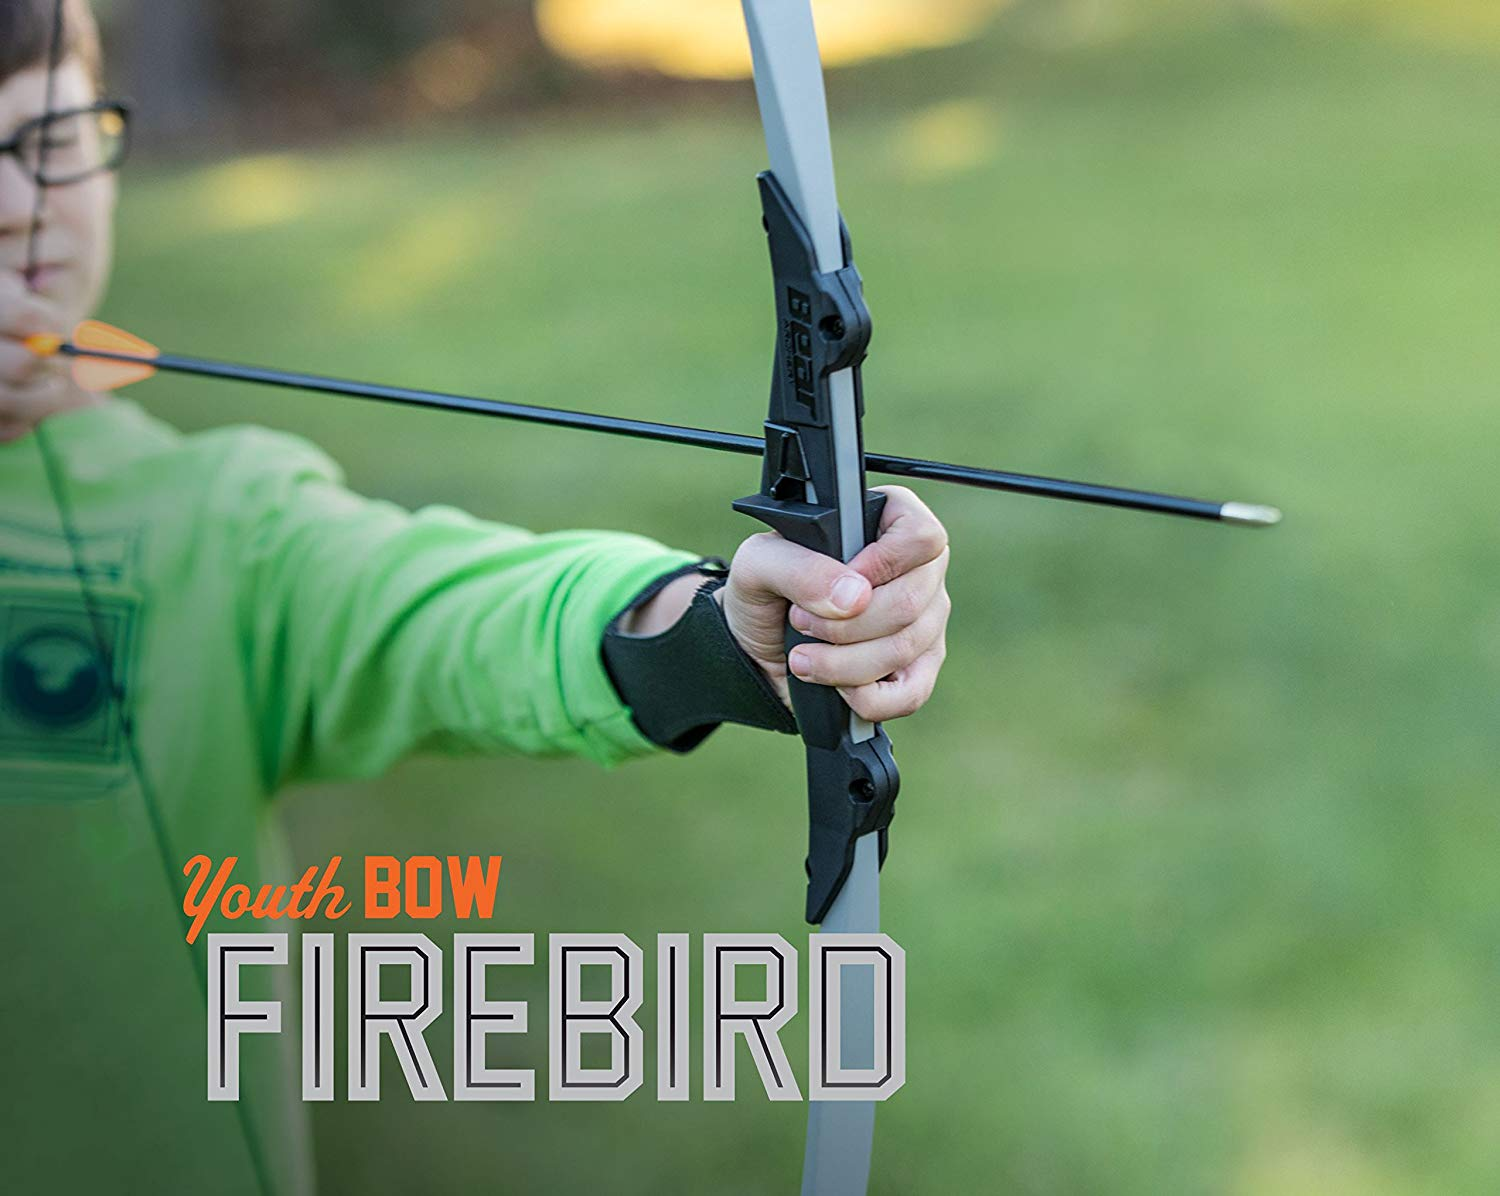 Archery Firebird Youth Bow